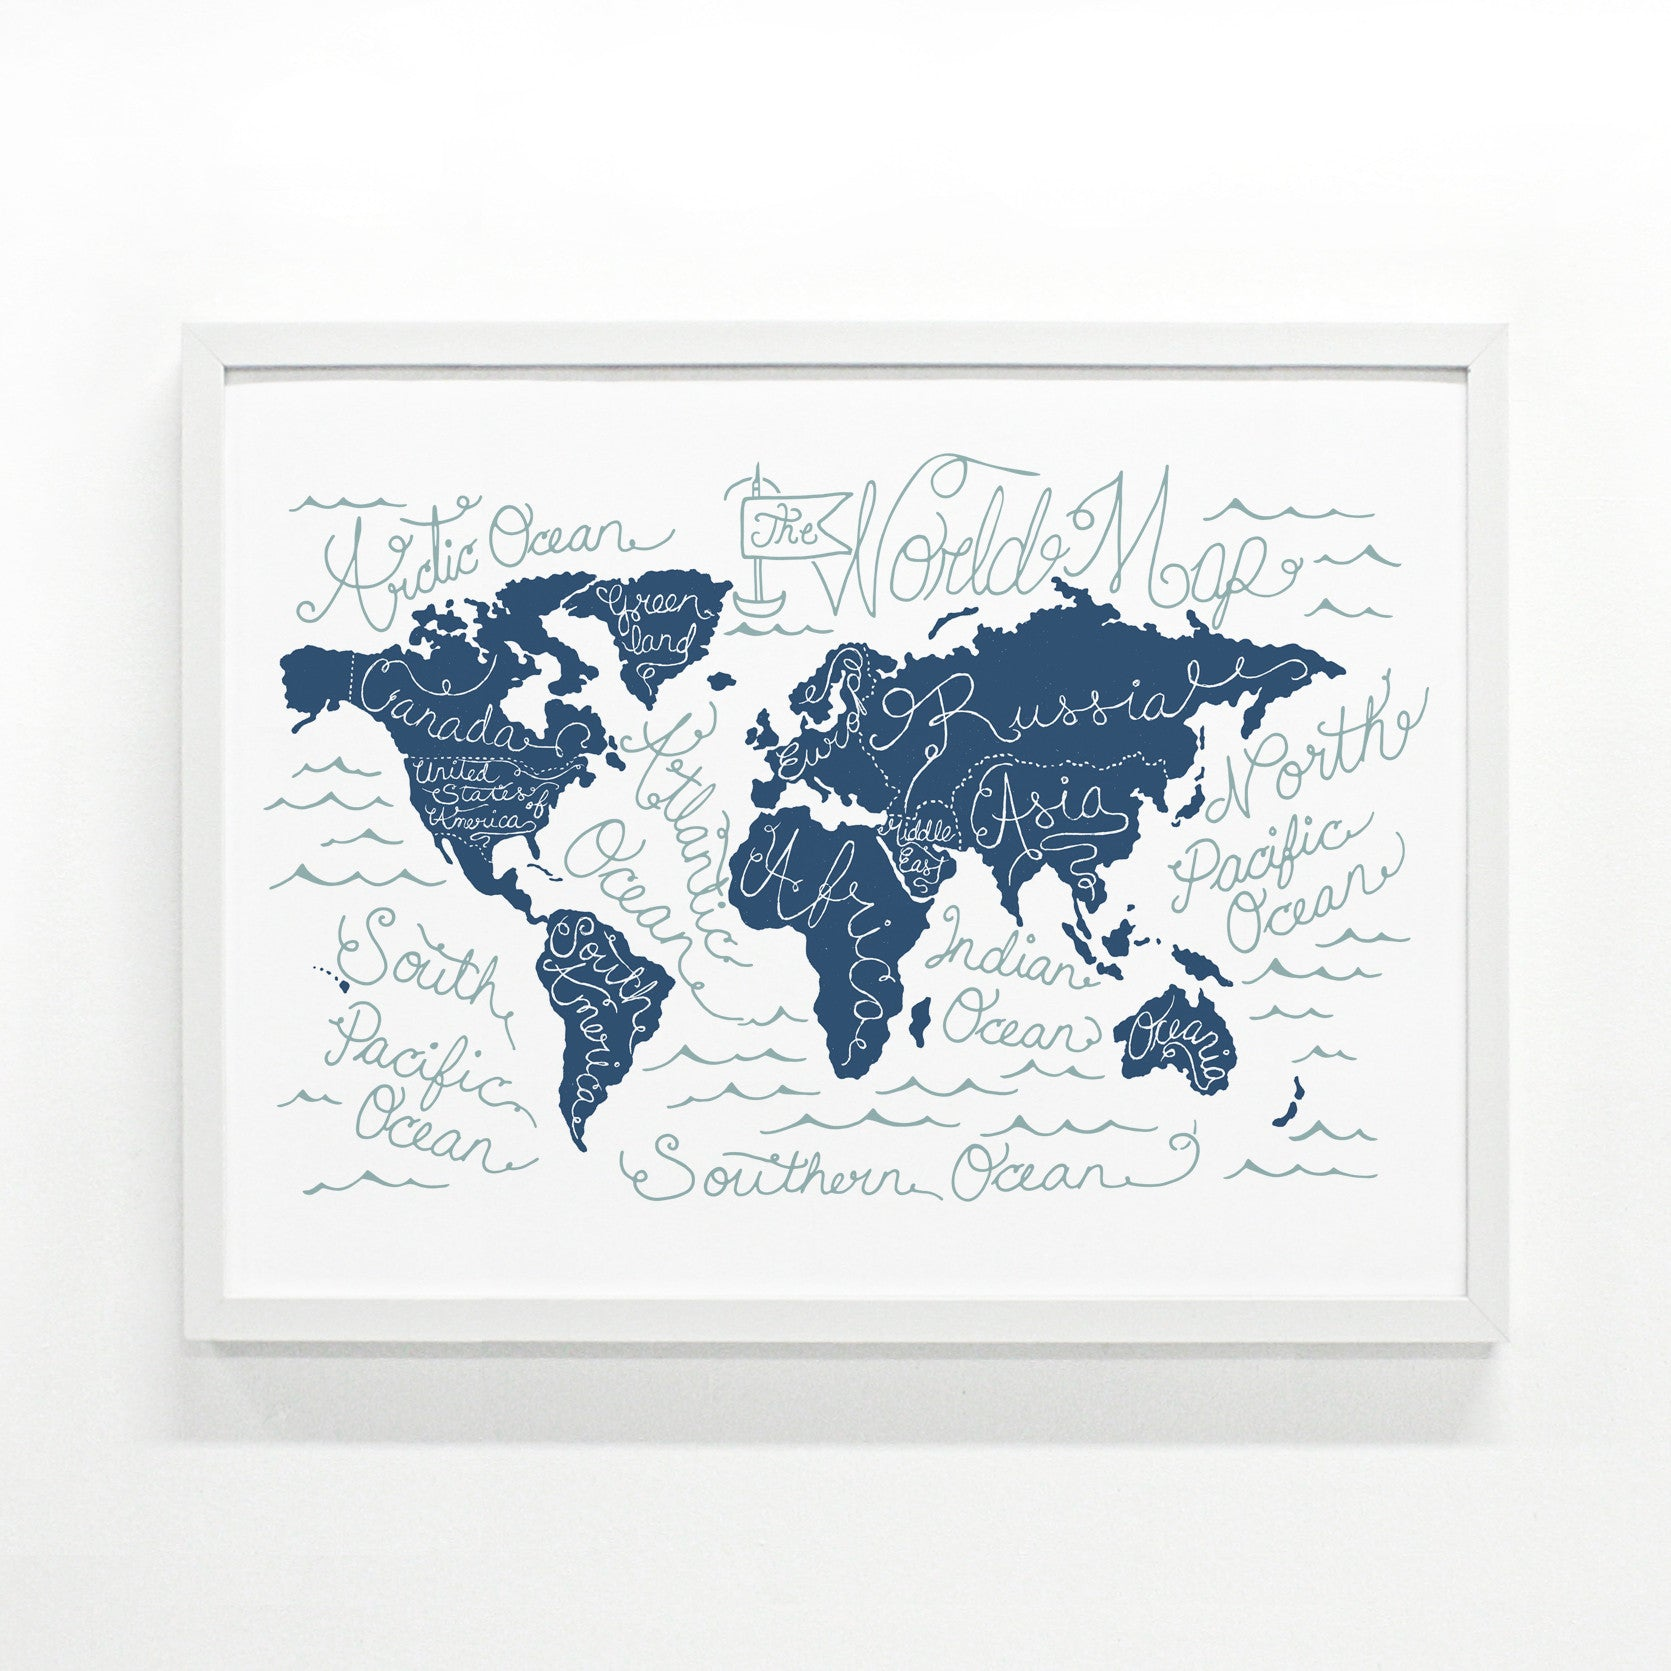 Silkscreen print world map screen printed poster 18 x 24 poster slate blue world map 18 x 24 modern screen printed poster by monorail studio gumiabroncs